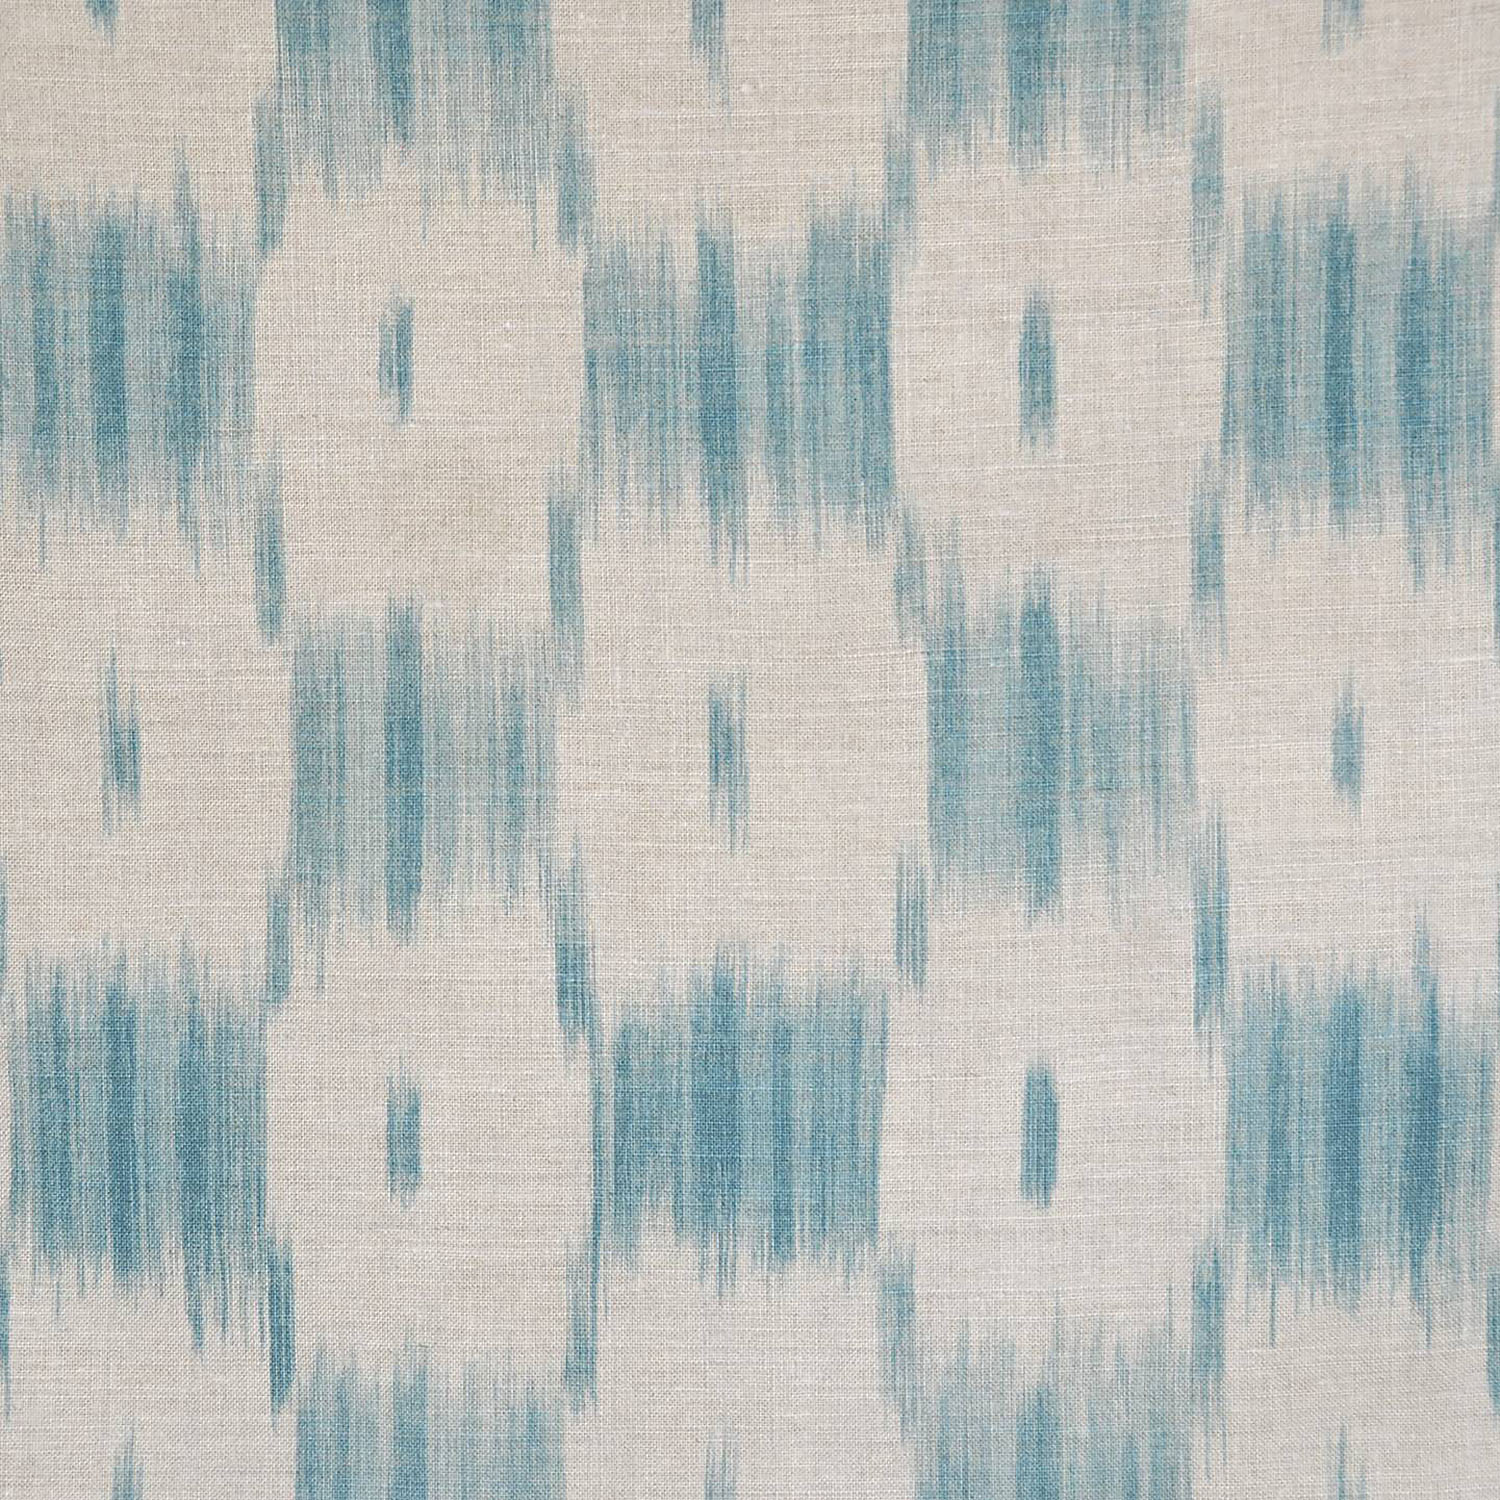 <p><strong>IKAT CHECK</strong>turquoise 8300-06<a href=/collection-4/ikat-check-turquoise-8300-06>More →</a></p>